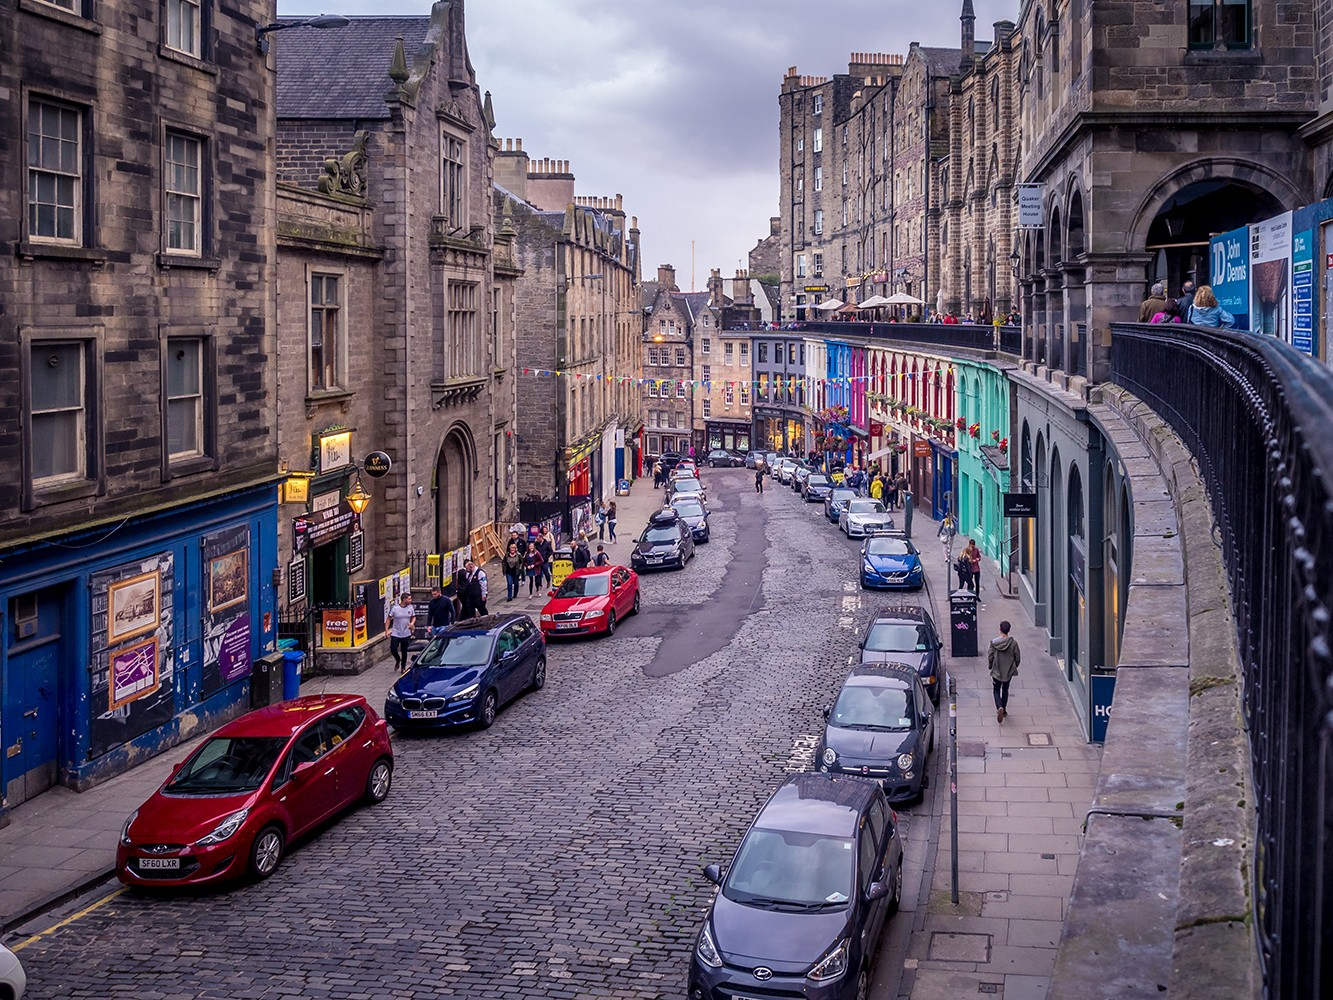 Best places to take Instagram photos in Edinburgh Scotland by travel blogger My Beauty Bunny - Best Photo Spots in Edinburgh that are Instagram Friendly featured by popular Los Angeles travel blogger, My Beauty Bunny